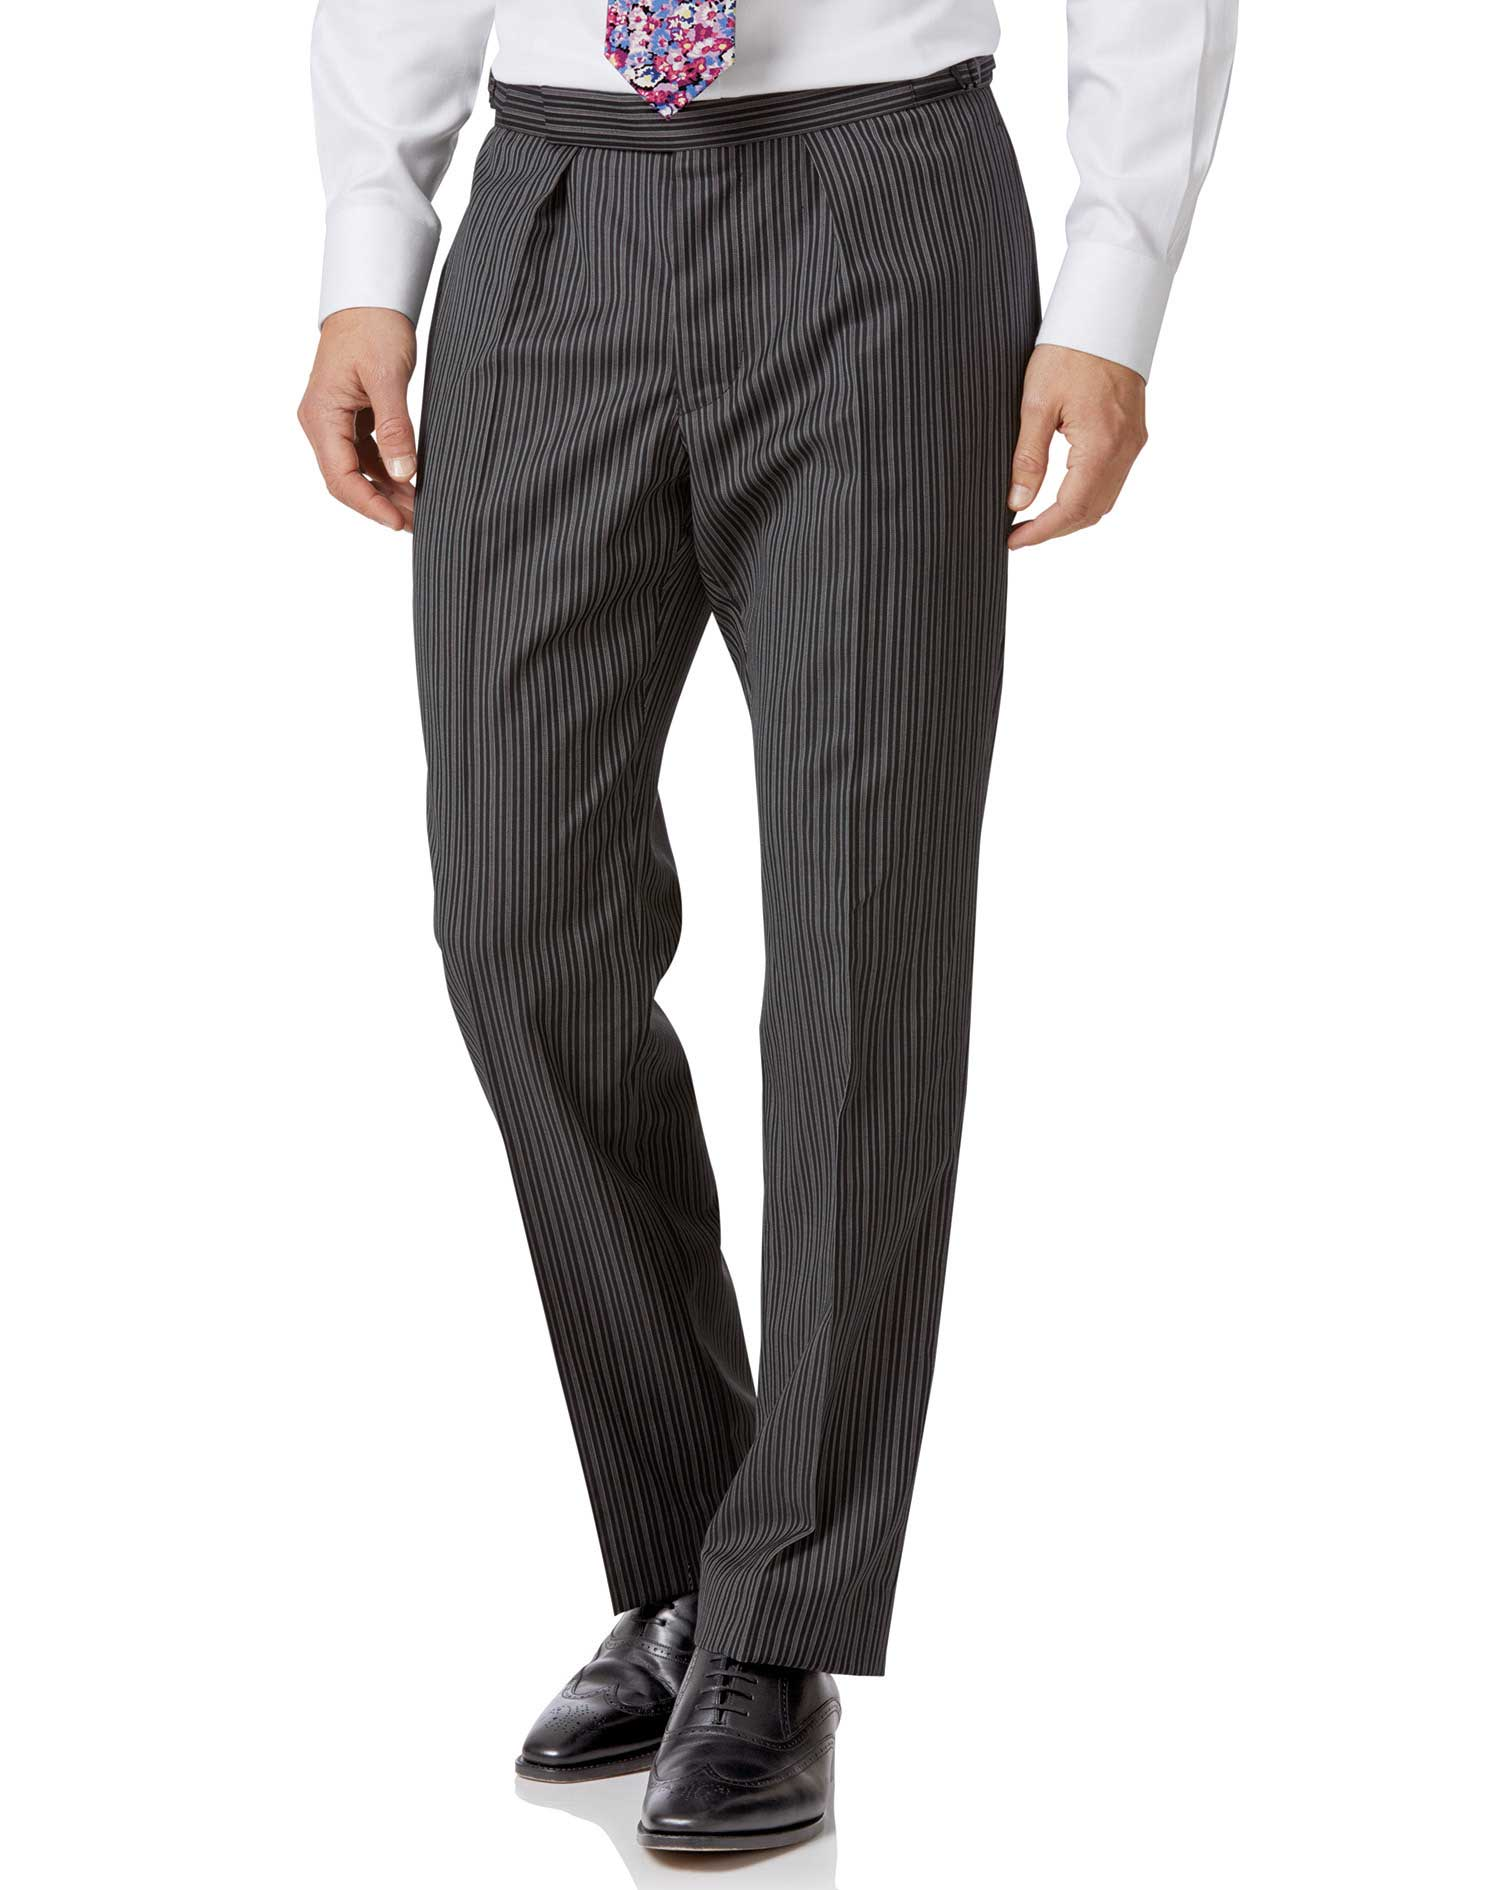 Black Stripe Classic Fit Morning Suit Trousers Size 42/38 by Charles Tyrwhitt